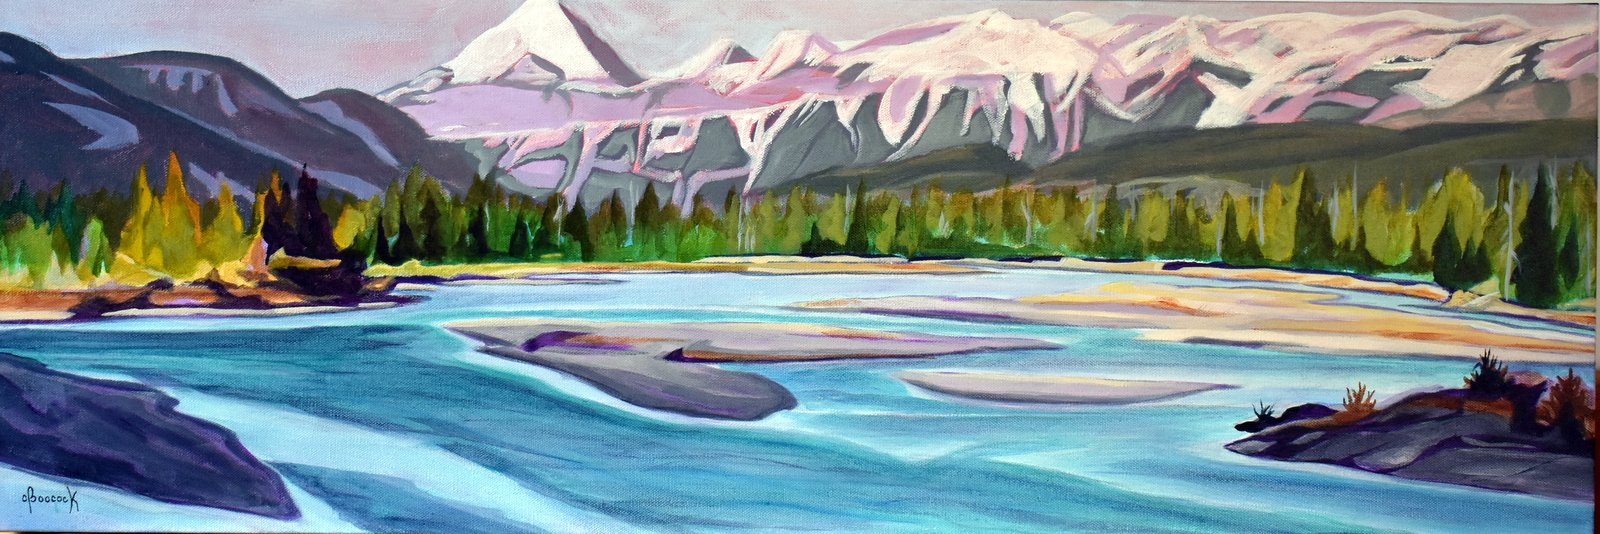 Morning Flow - Athabasca River Series